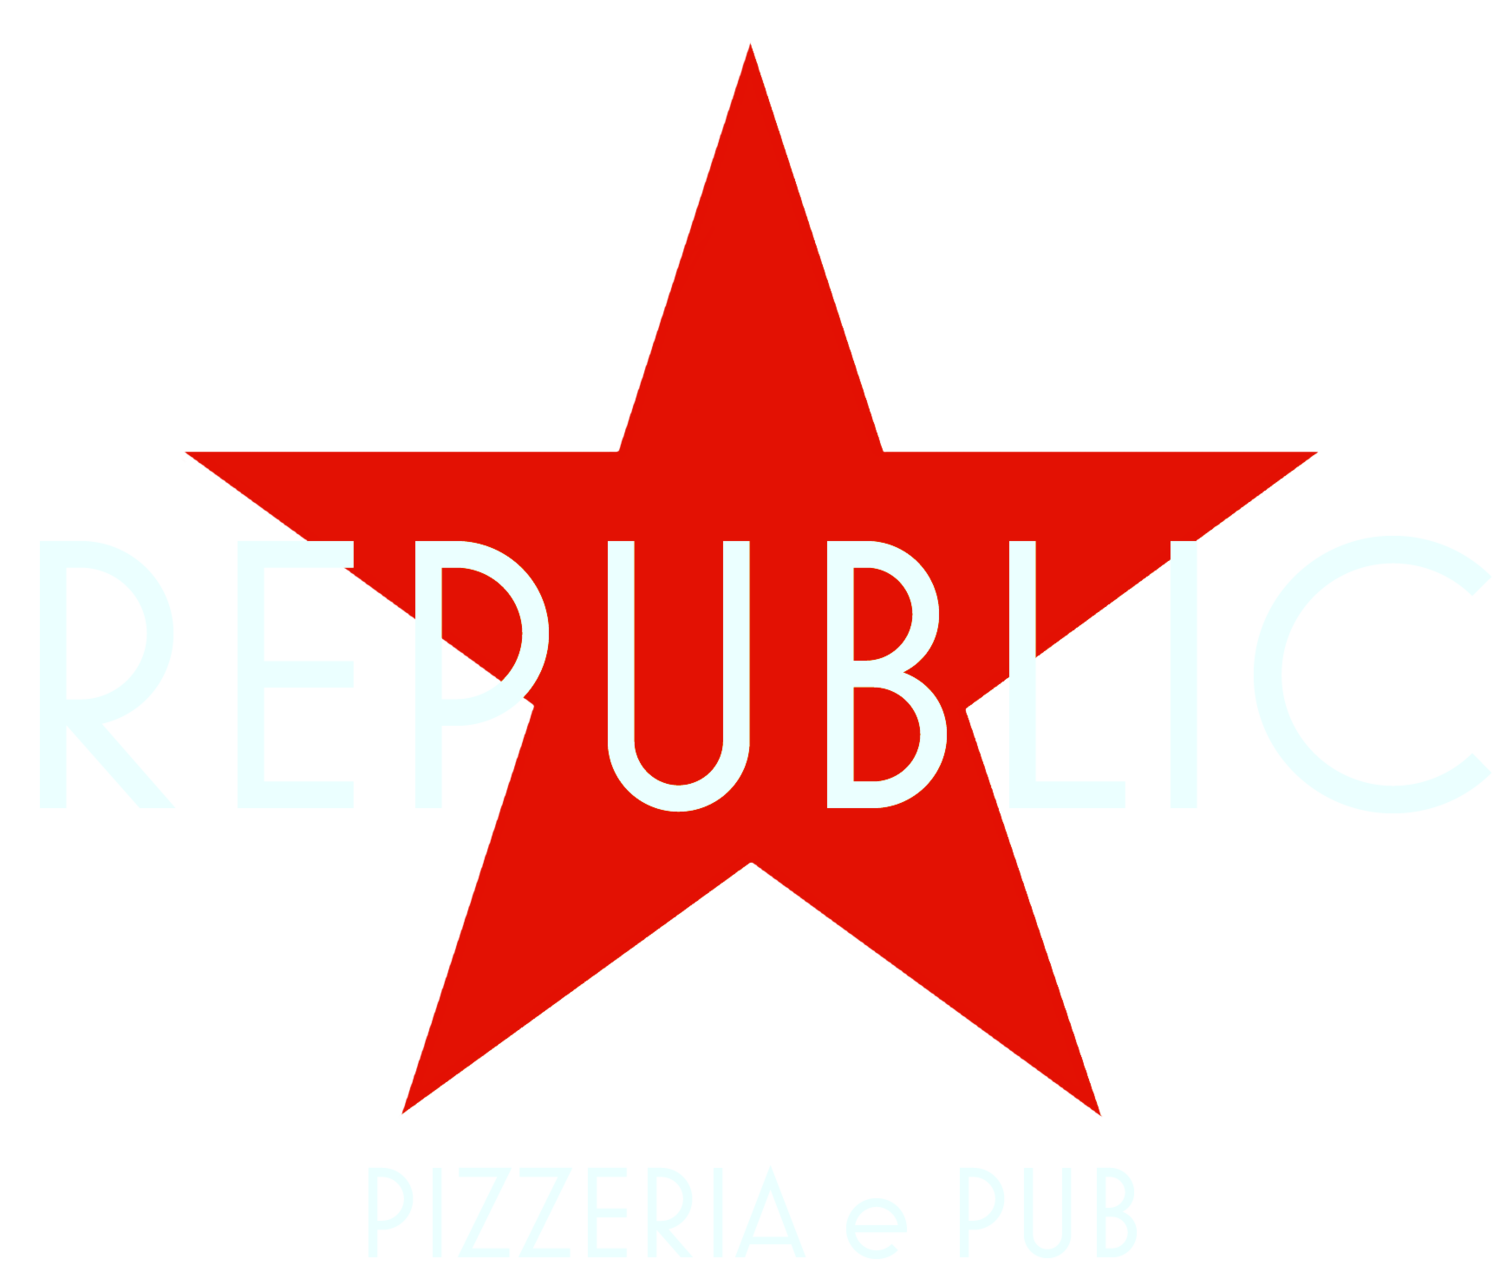 Republic Pizzeria e Pub